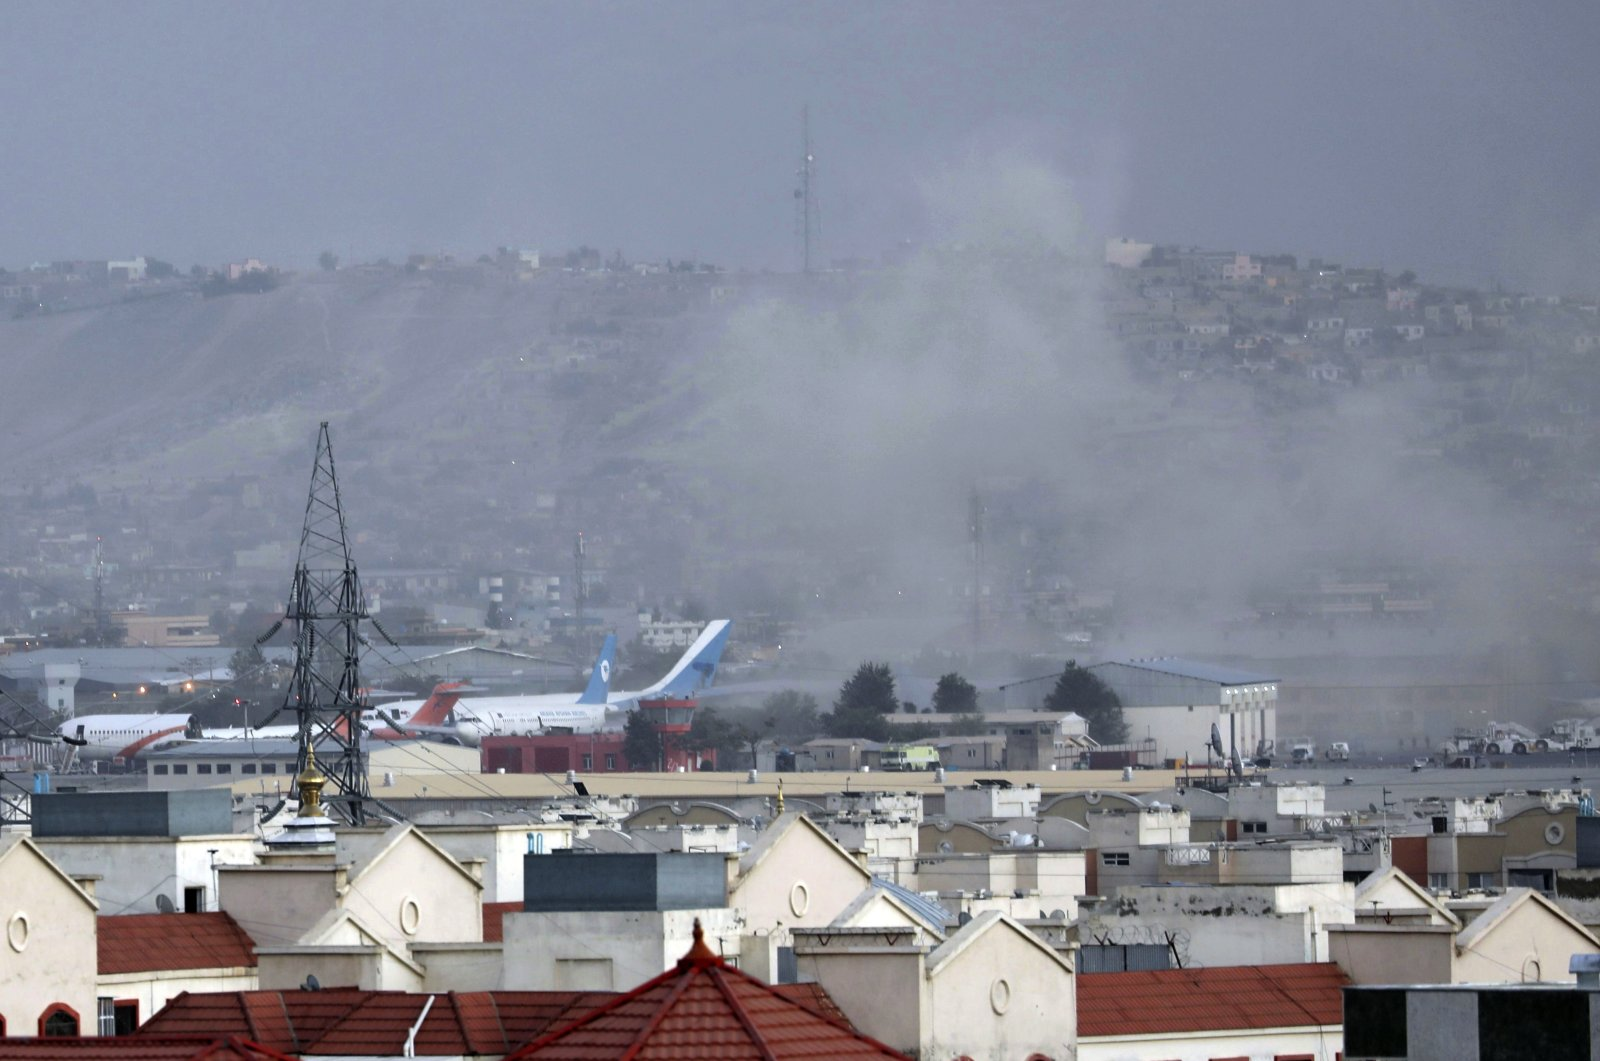 Smoke rises from a deadly explosion outside the airport in Kabul, Afghanistan, Aug. 26, 2021. (AP Photo)